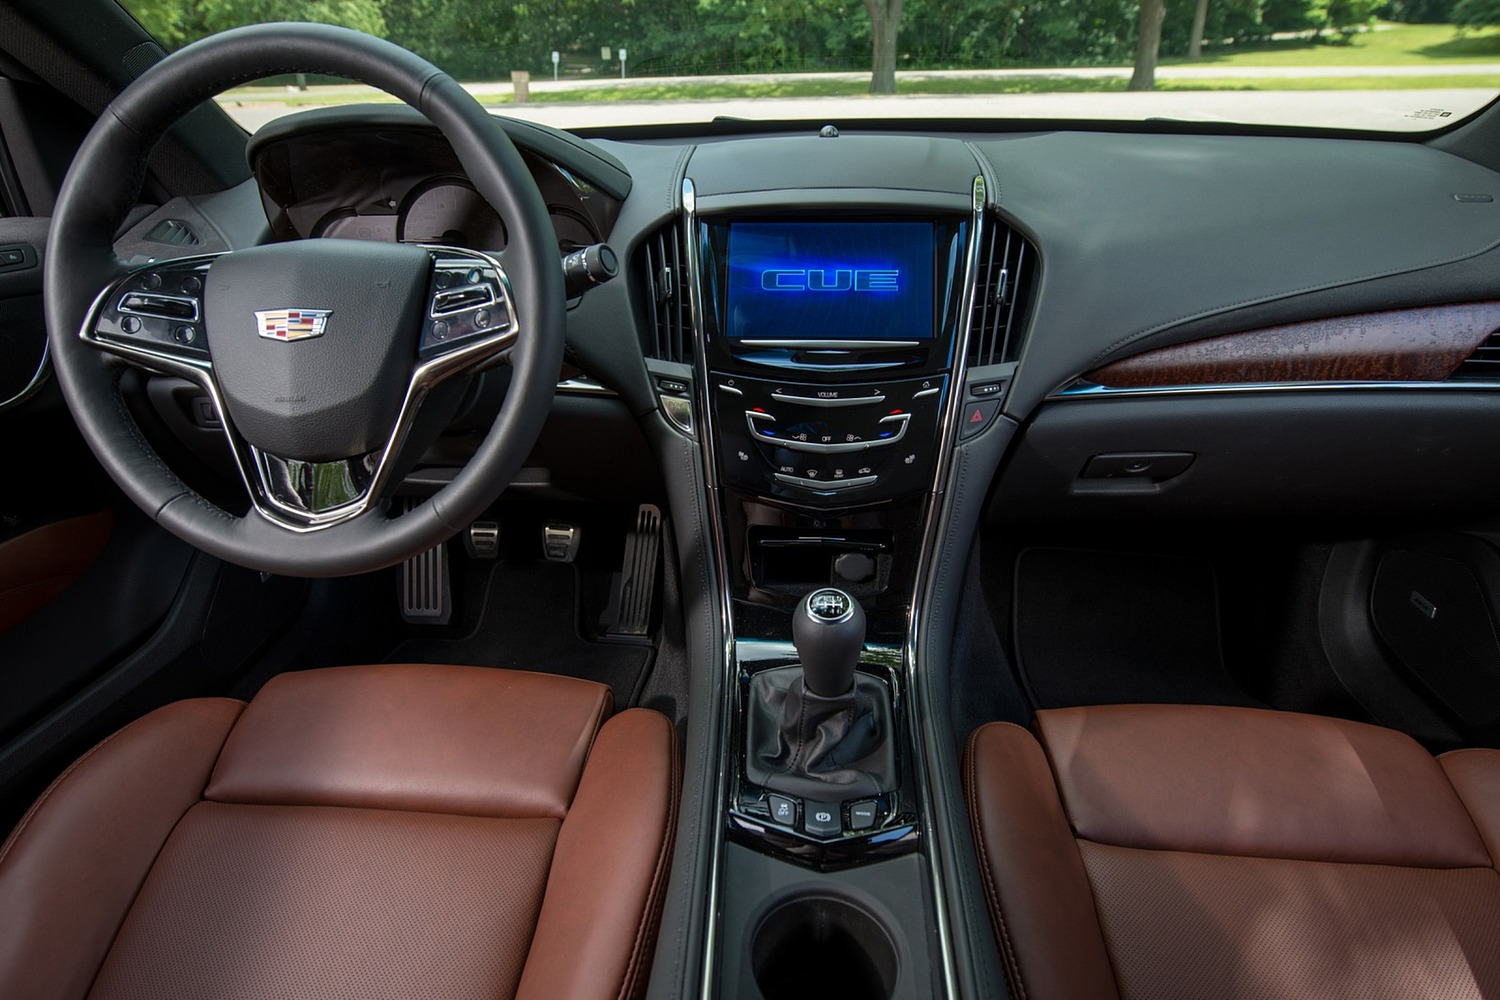 2018 Cadillac ATS Coupe Premium Performance Dashboard